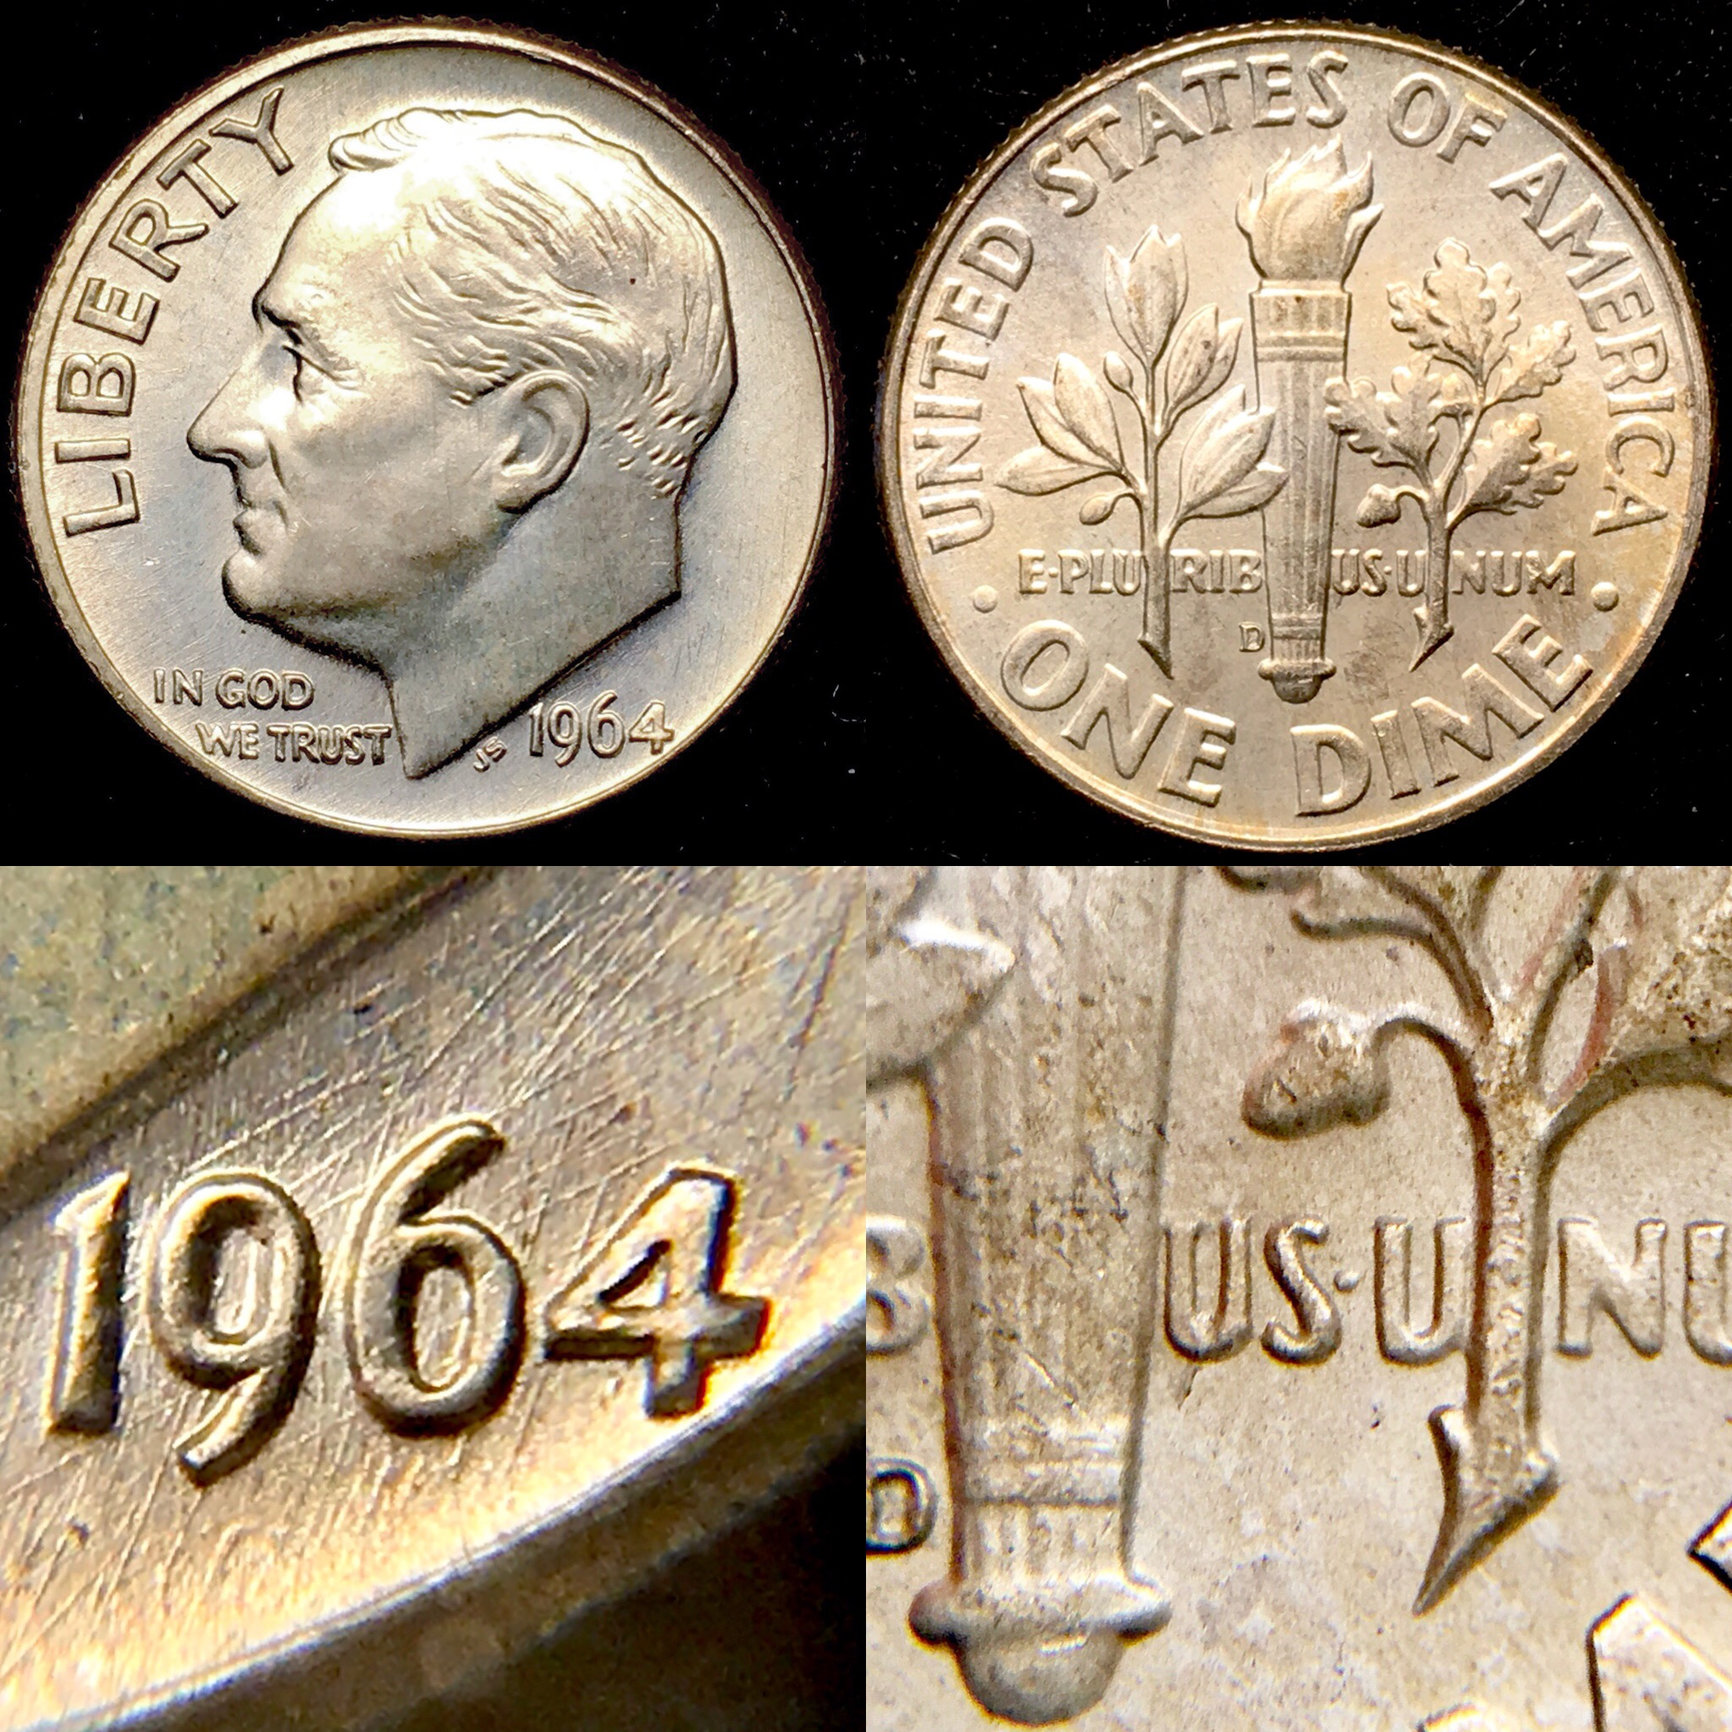 Does anyone have any 1964-D Dimes with this unique rim